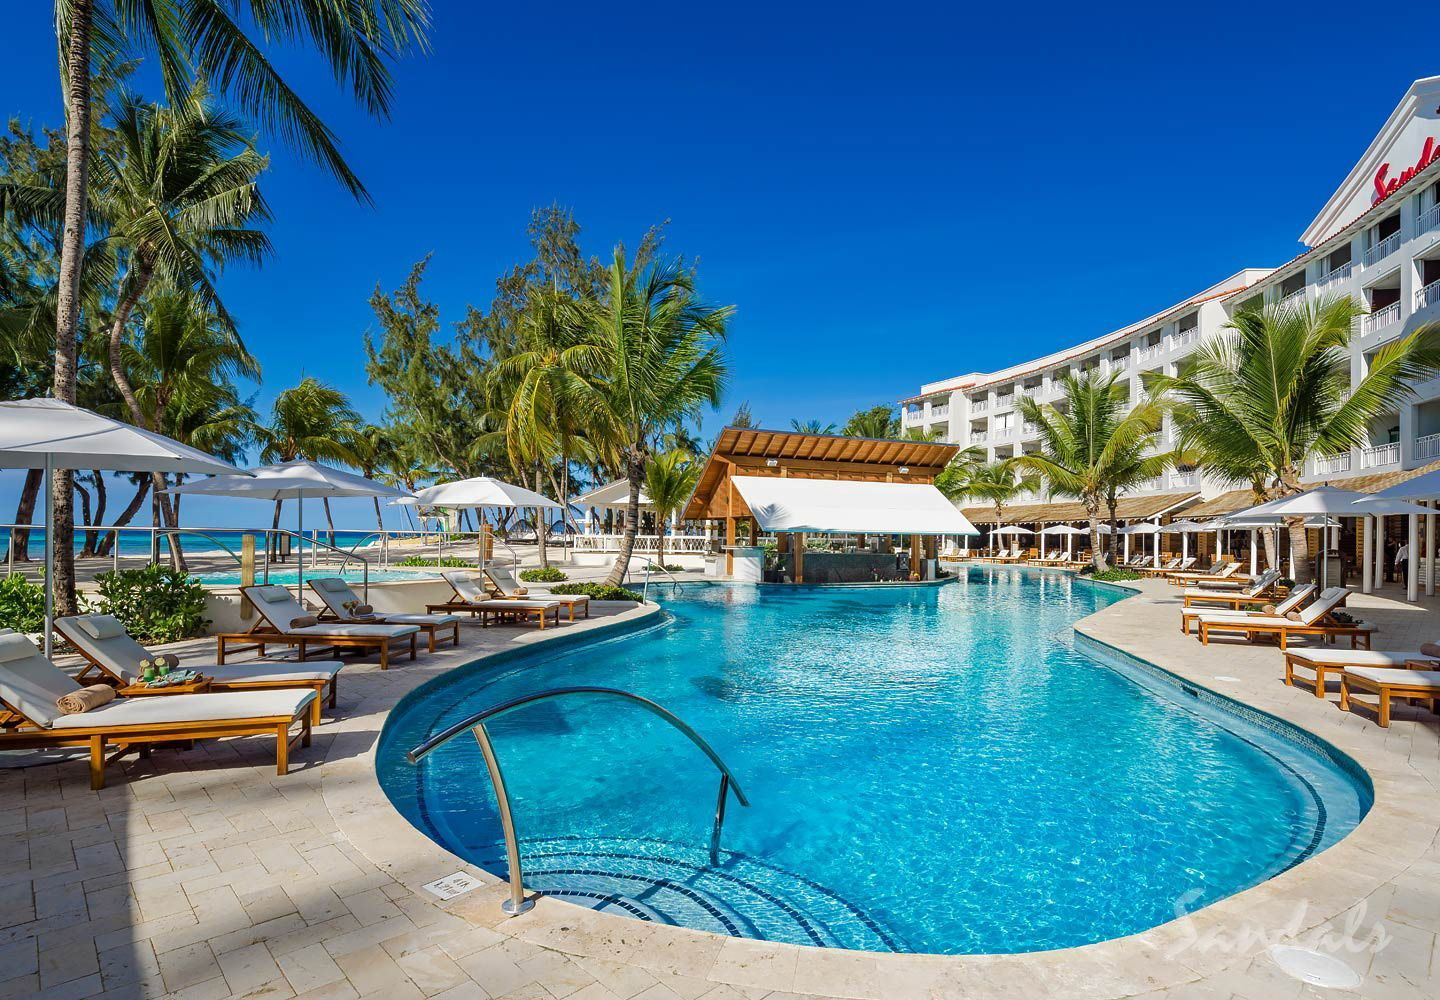 Luxury All Inclusive Honeymoon resort destination Sandals